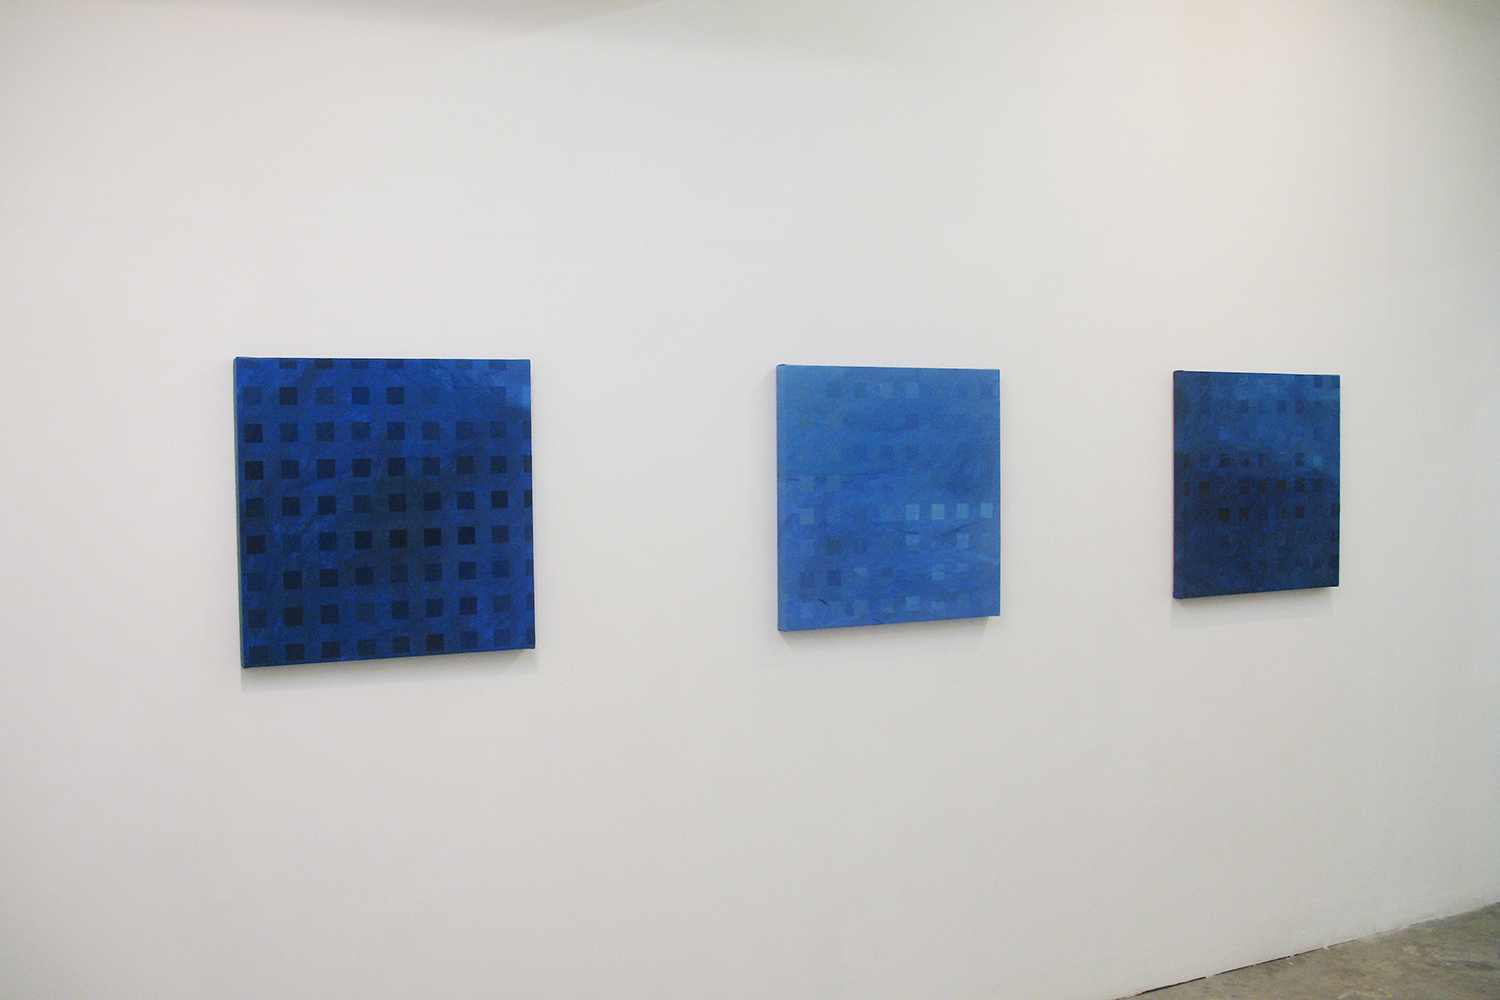 Installation view: Color-Work|oil on canvas|60 x 60 cm|2006 each